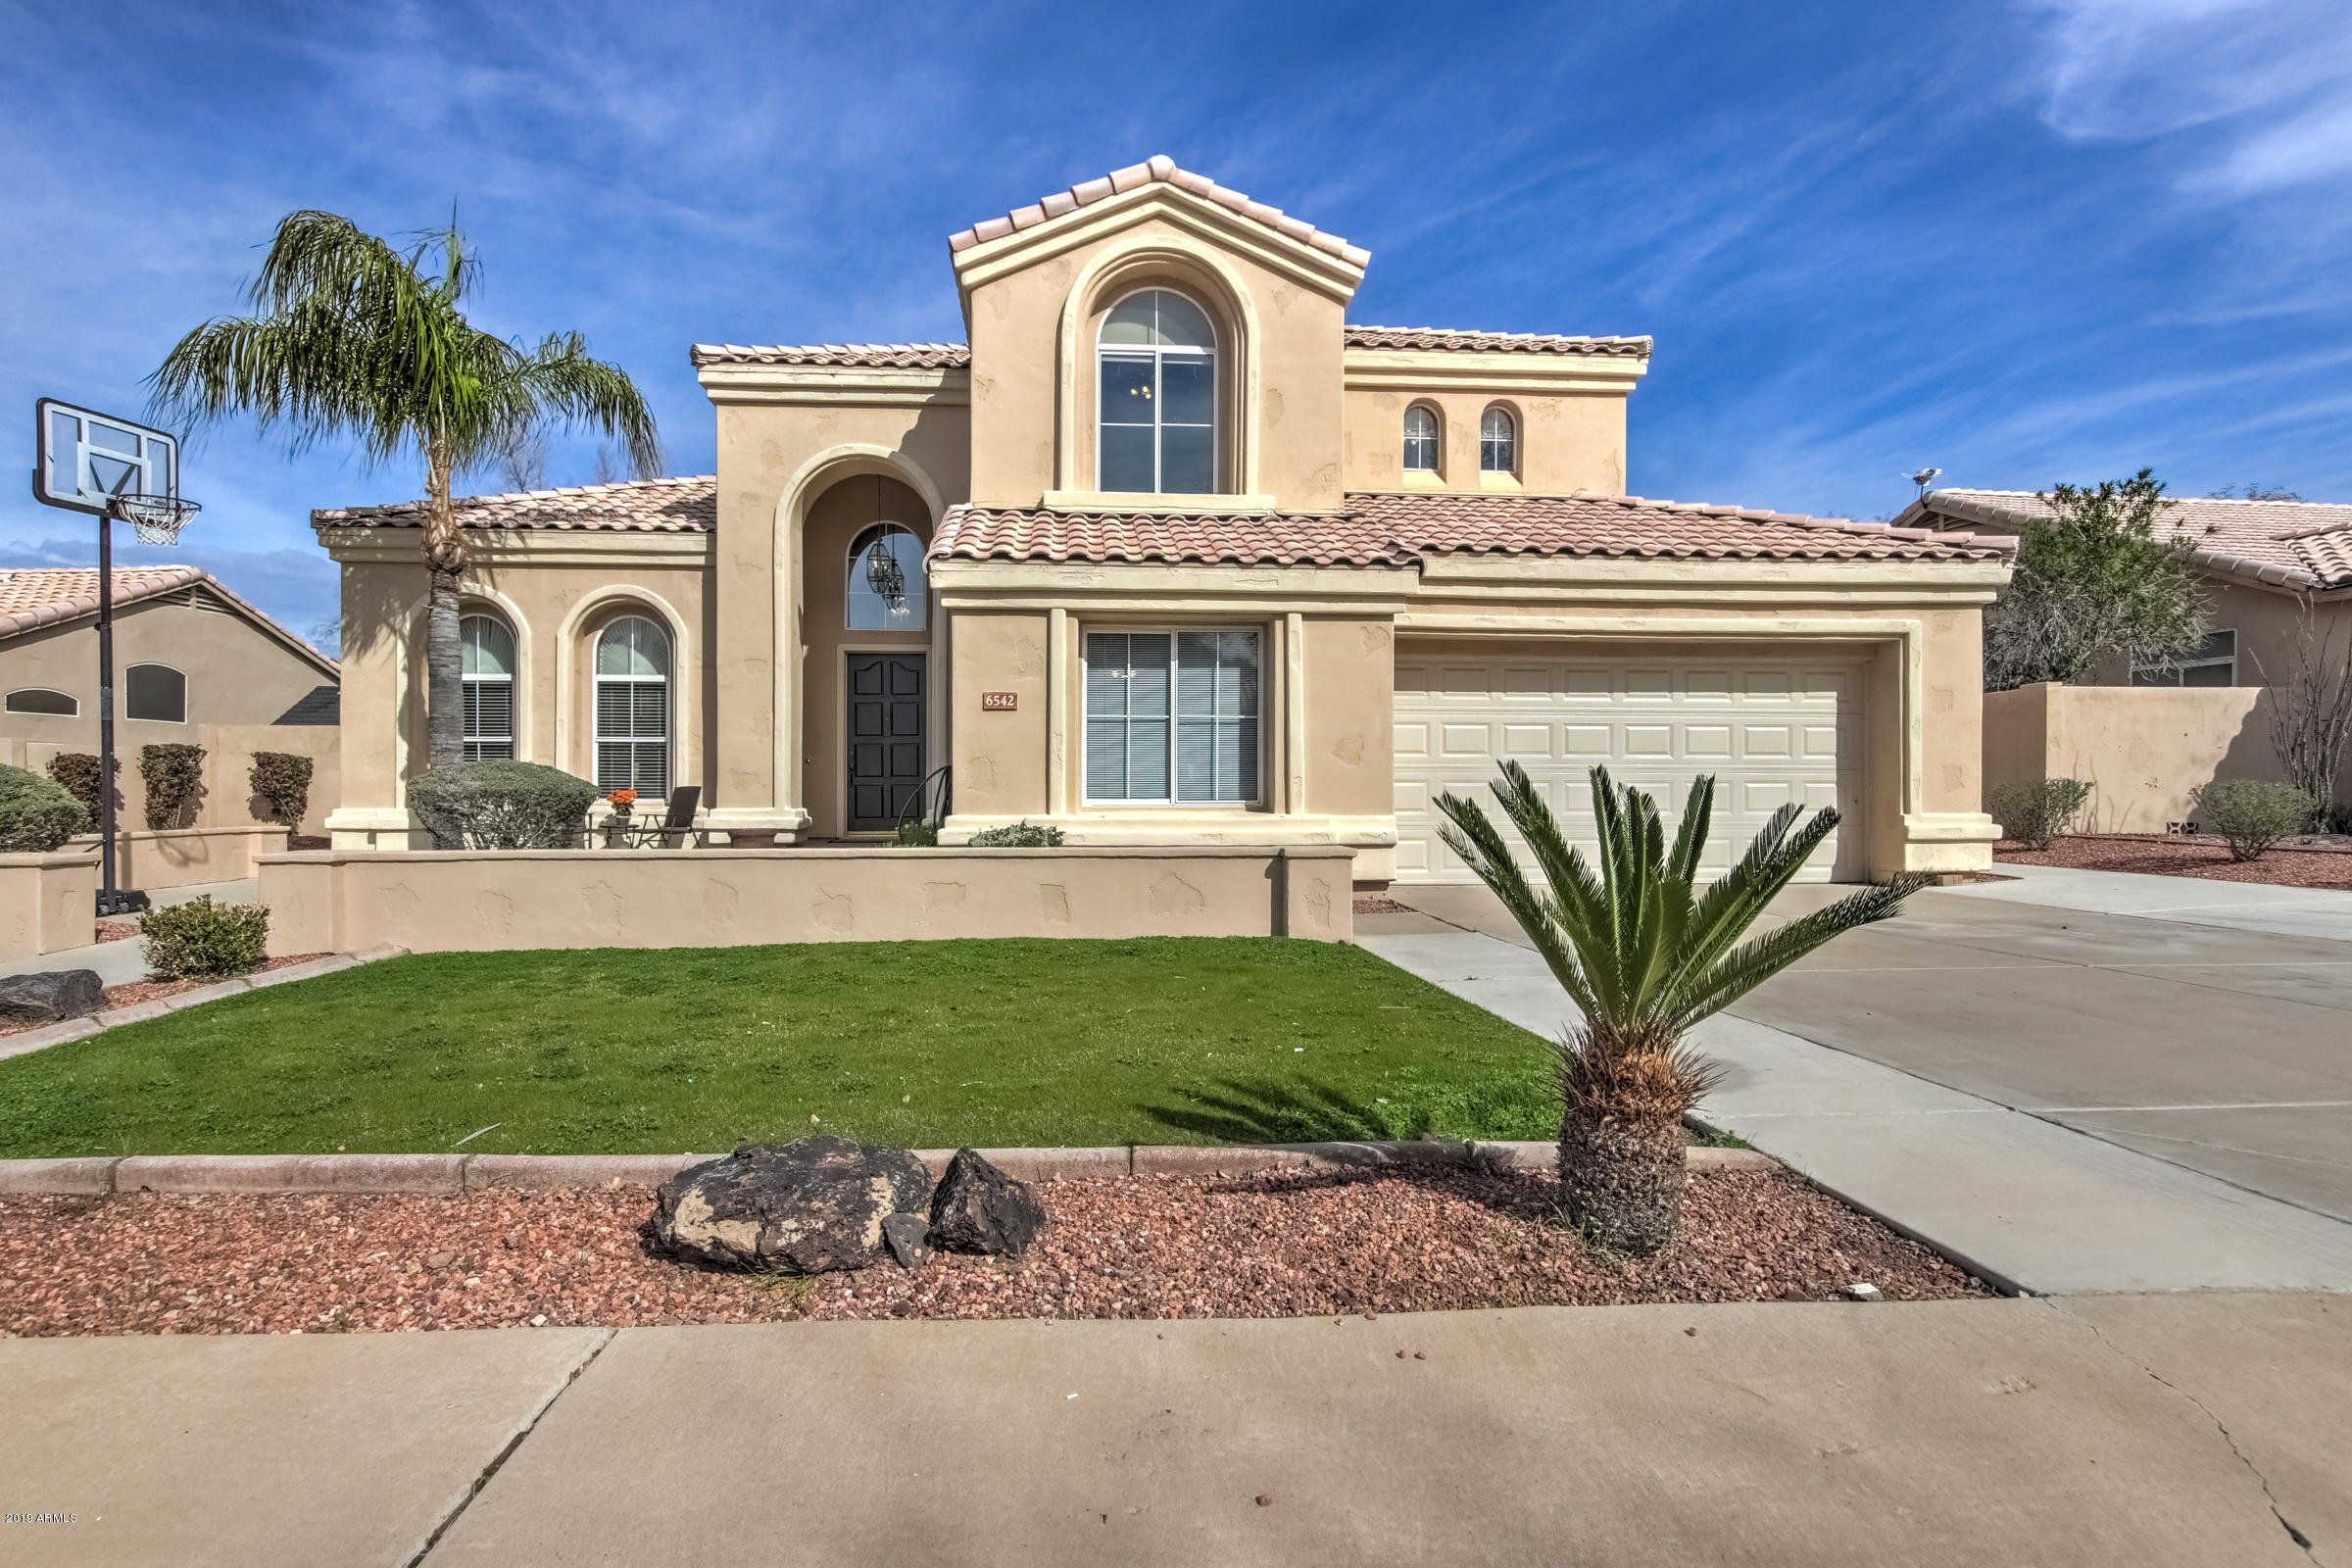 Photo of 6542 E VIRGINIA Street, Mesa, AZ 85215